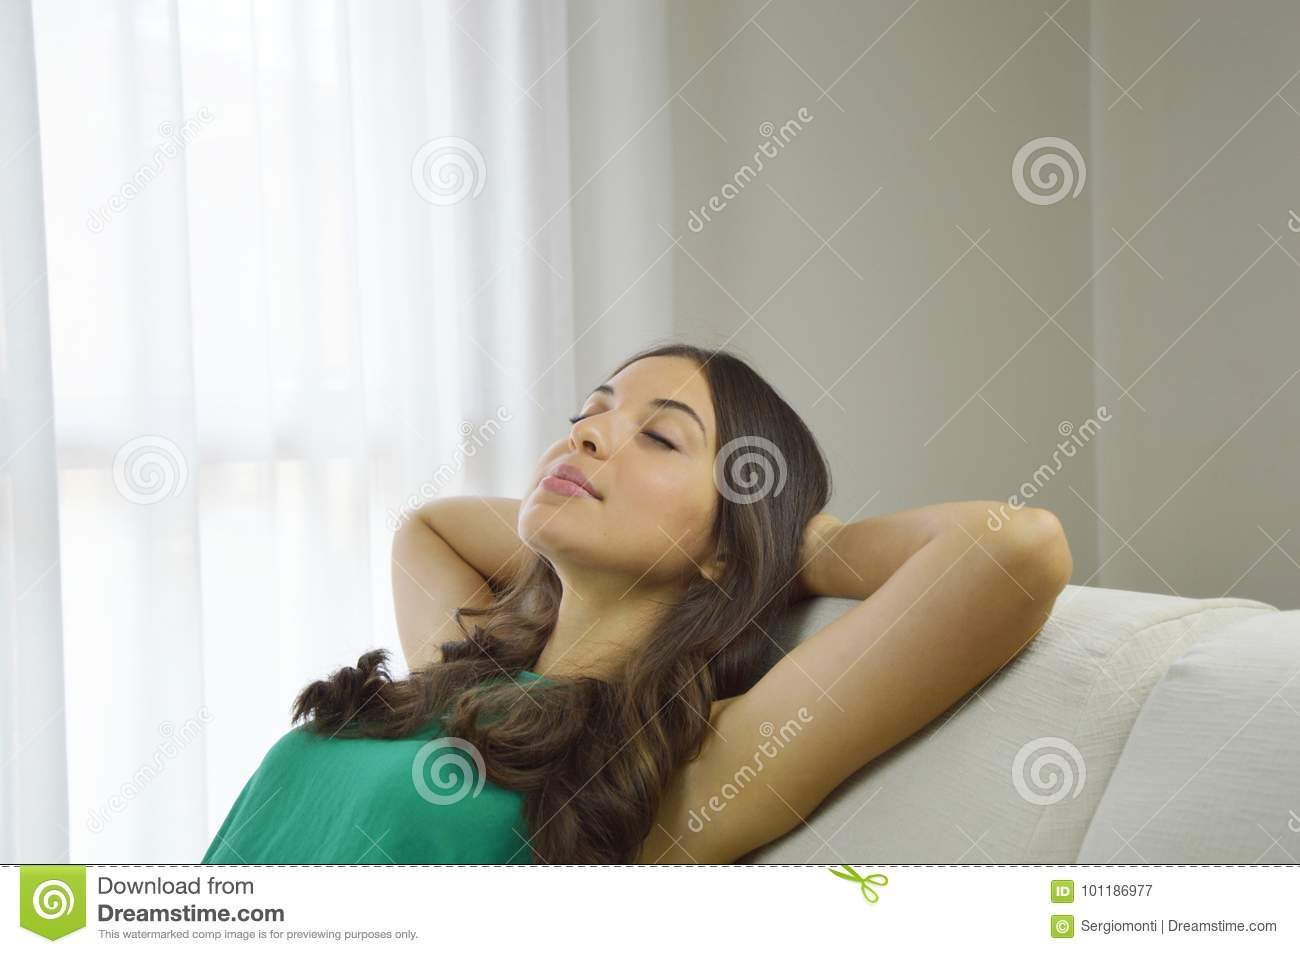 Relaxed young woman taking a nap on sofa. Smiling young woman with green tank top relaxing on a sofa at home sitting on a sofa in